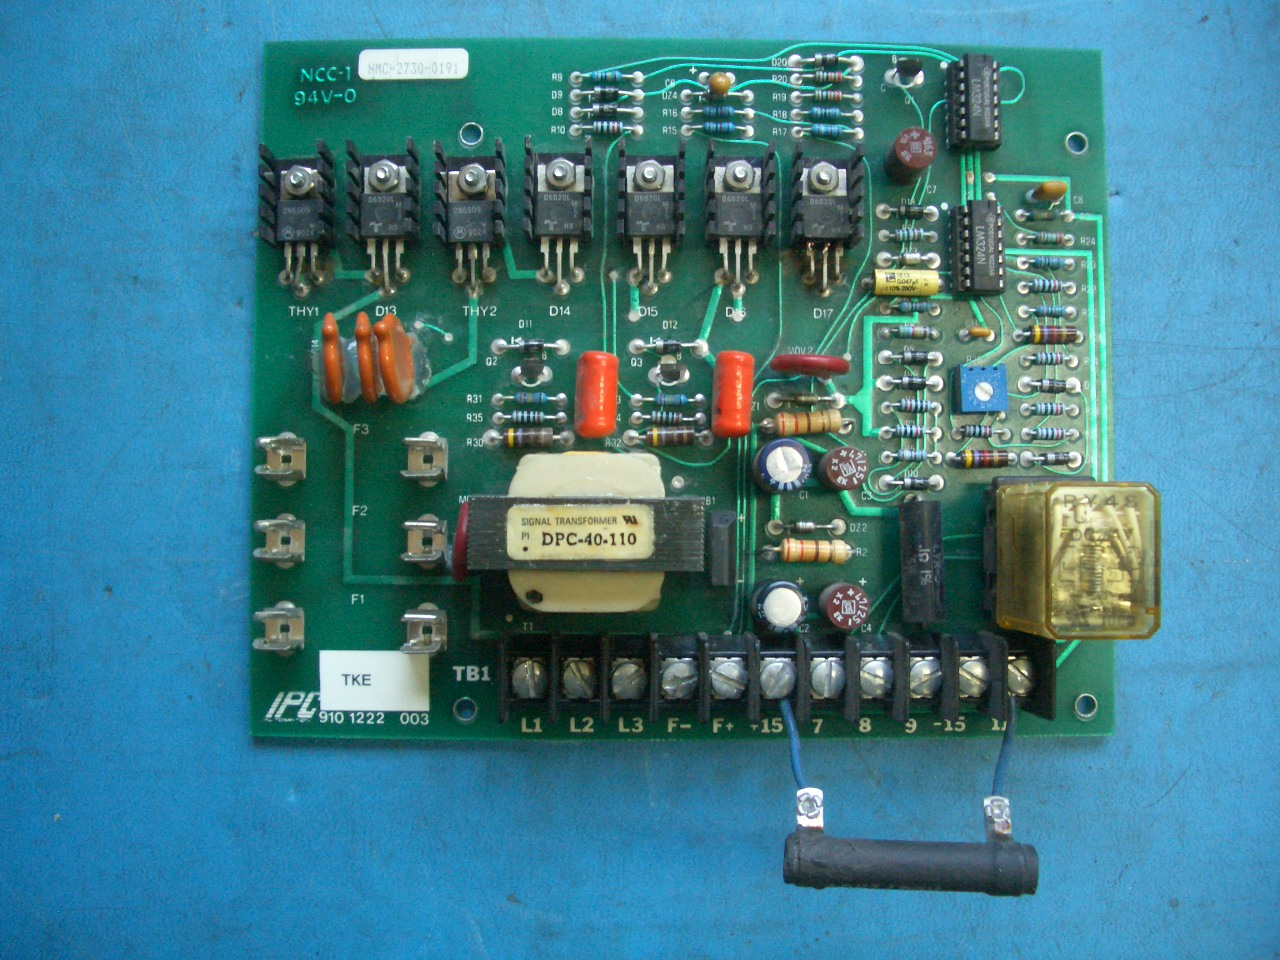 u s electronics repairs all types of printed circuit boards pc rh uselectronicsrepairs com 2870 Printed Circuit Board Printed Circuit Board Artwork